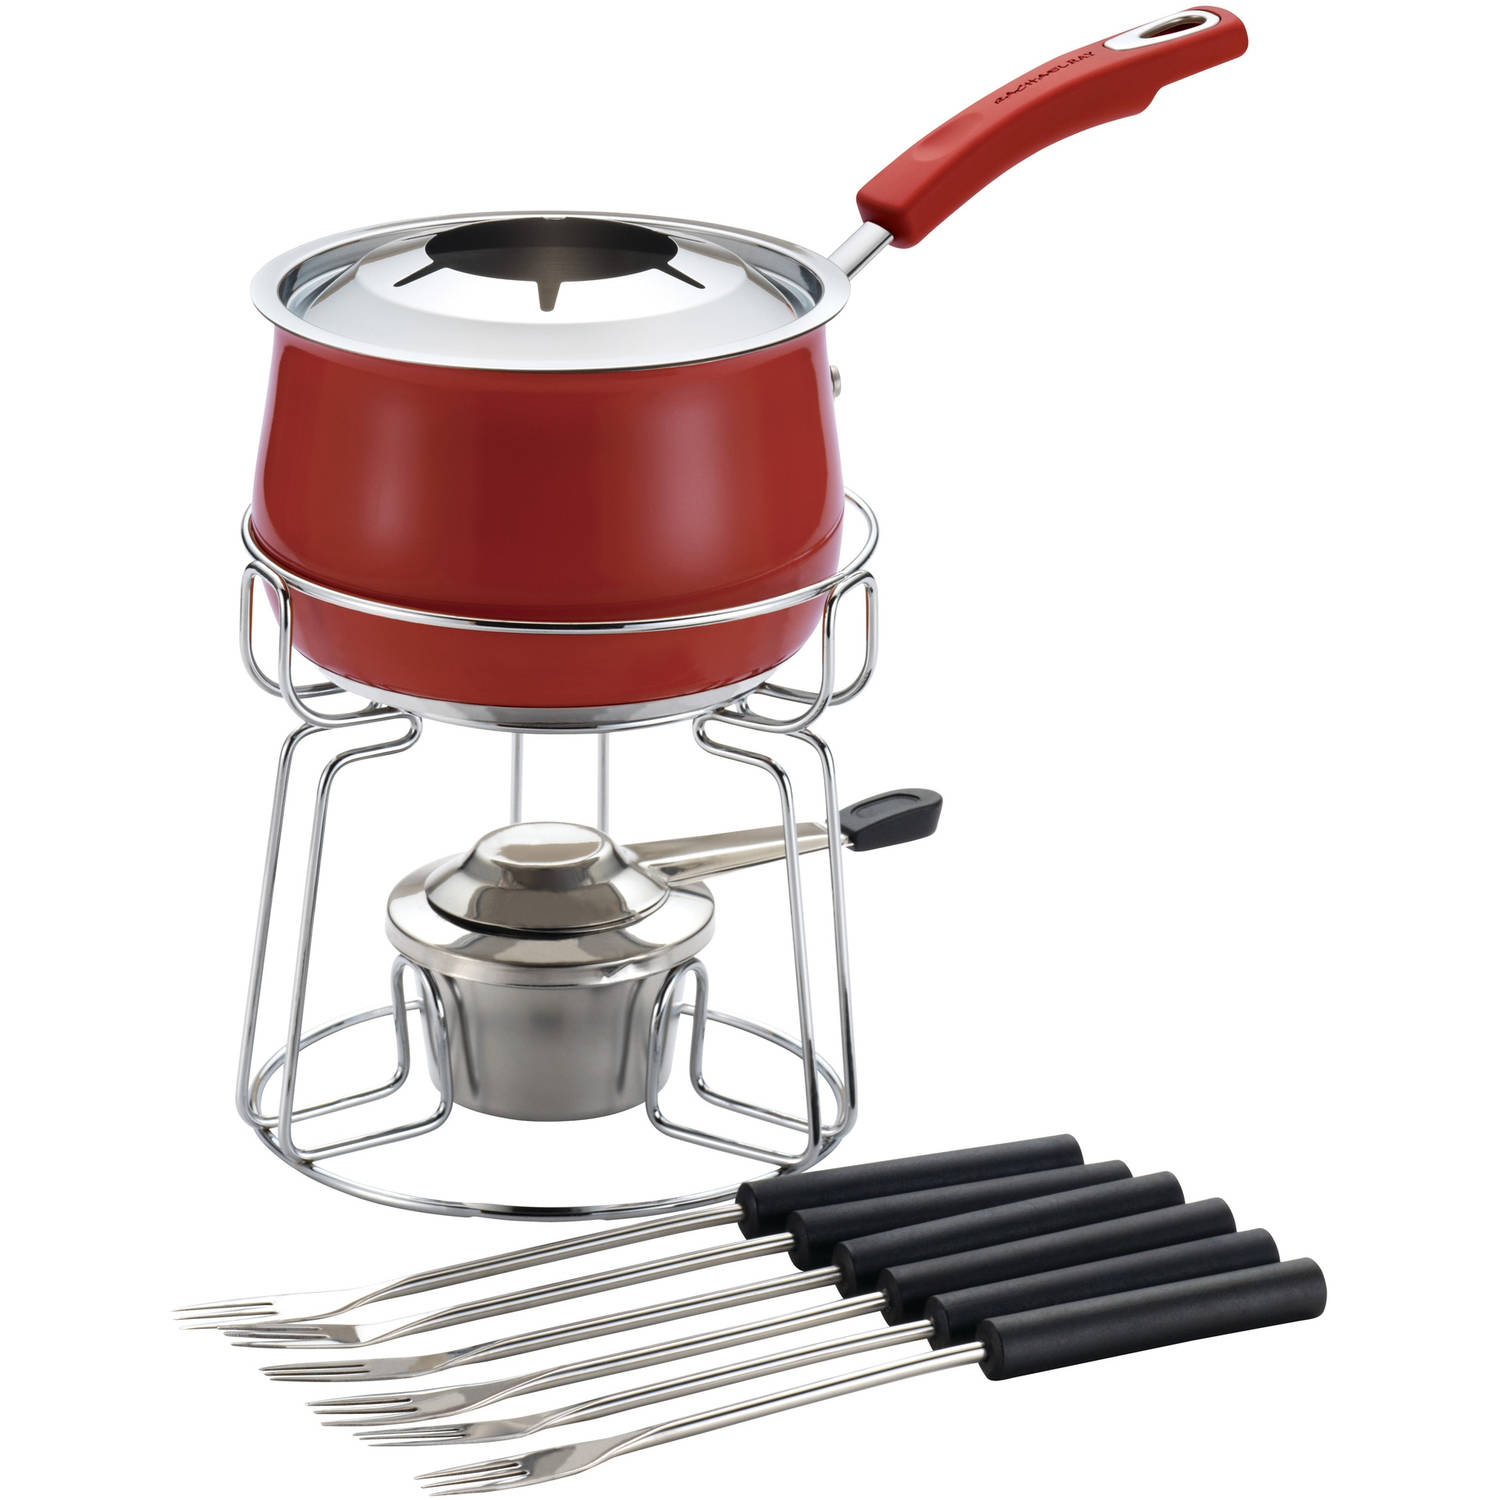 Rachael Ray Stainless Steel Fondue Set, Red